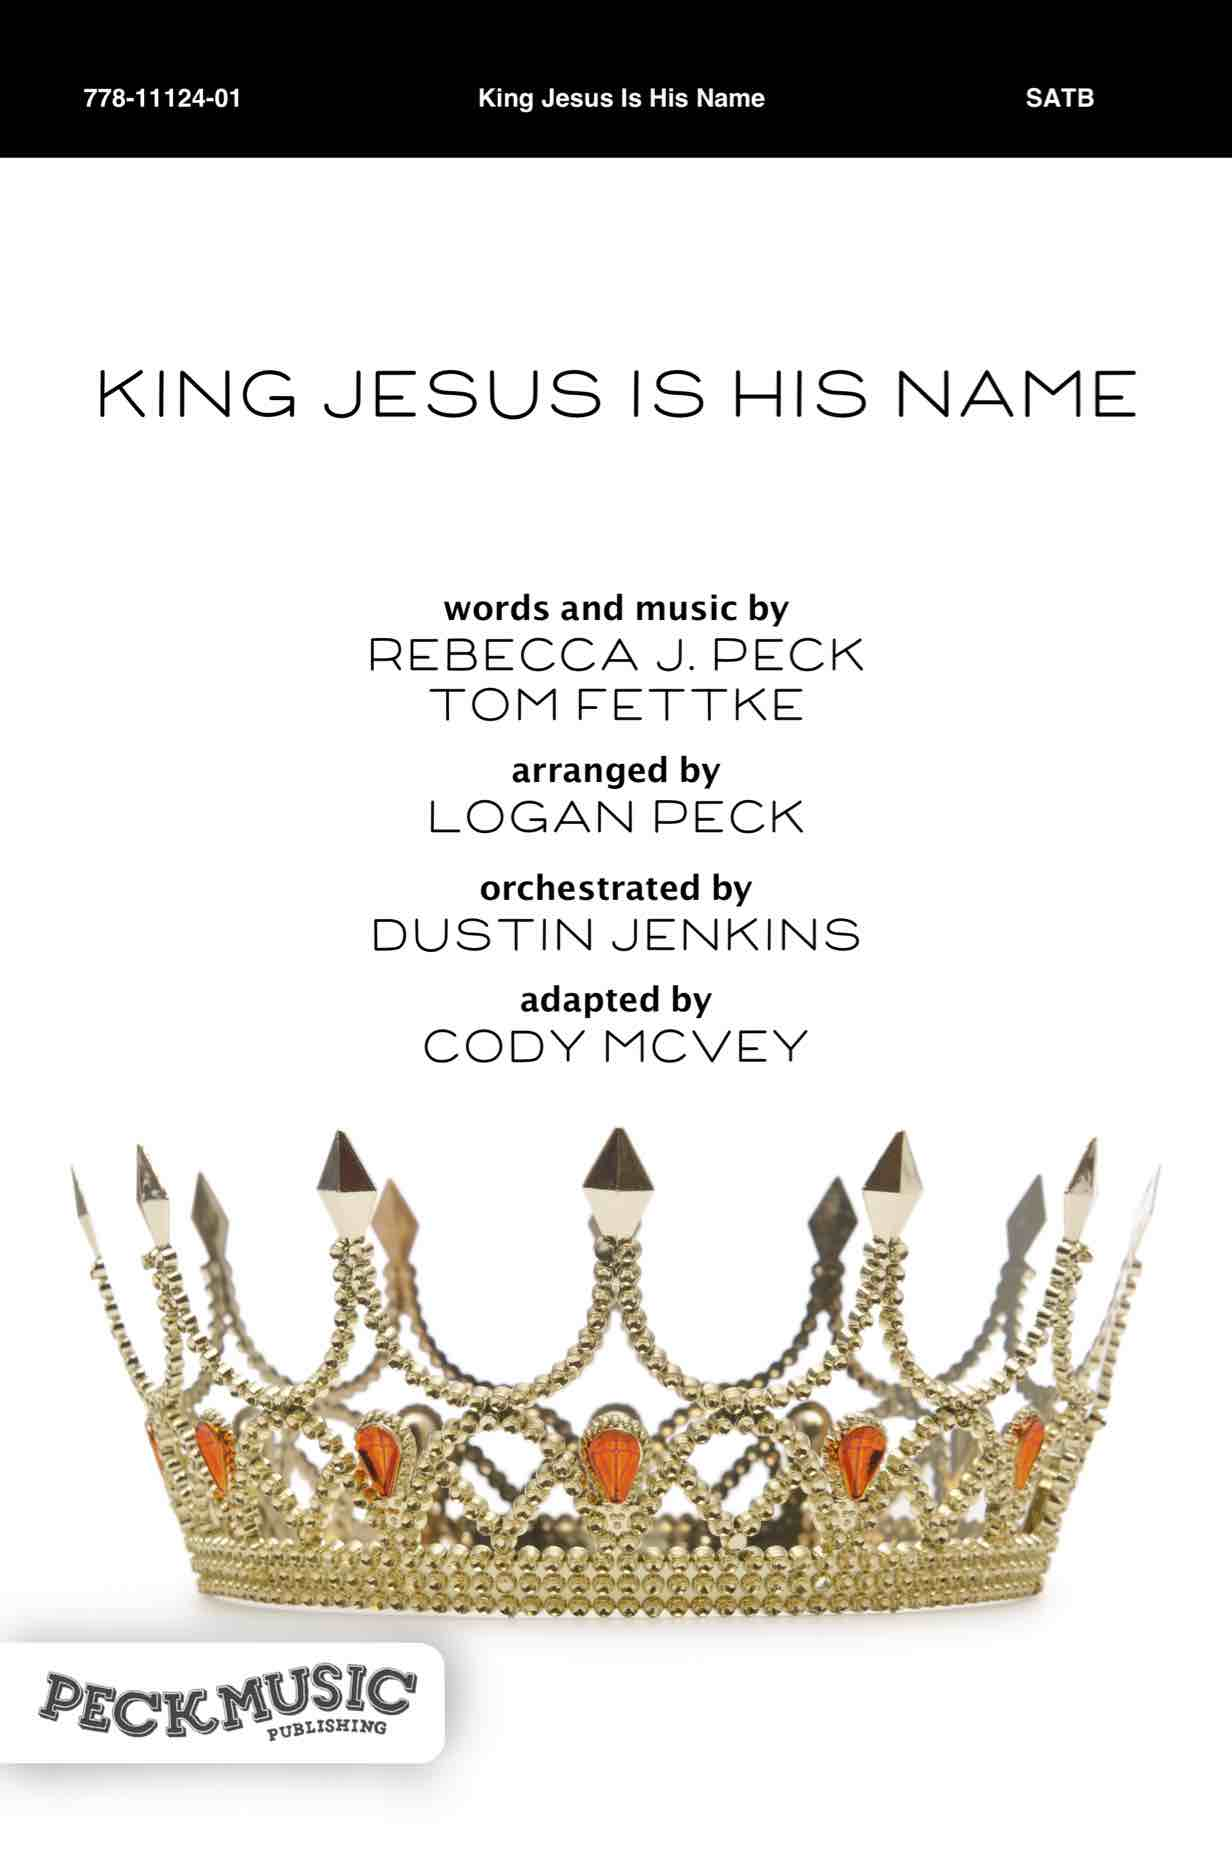 King Jesus Is His Name | Peck Music Publishing